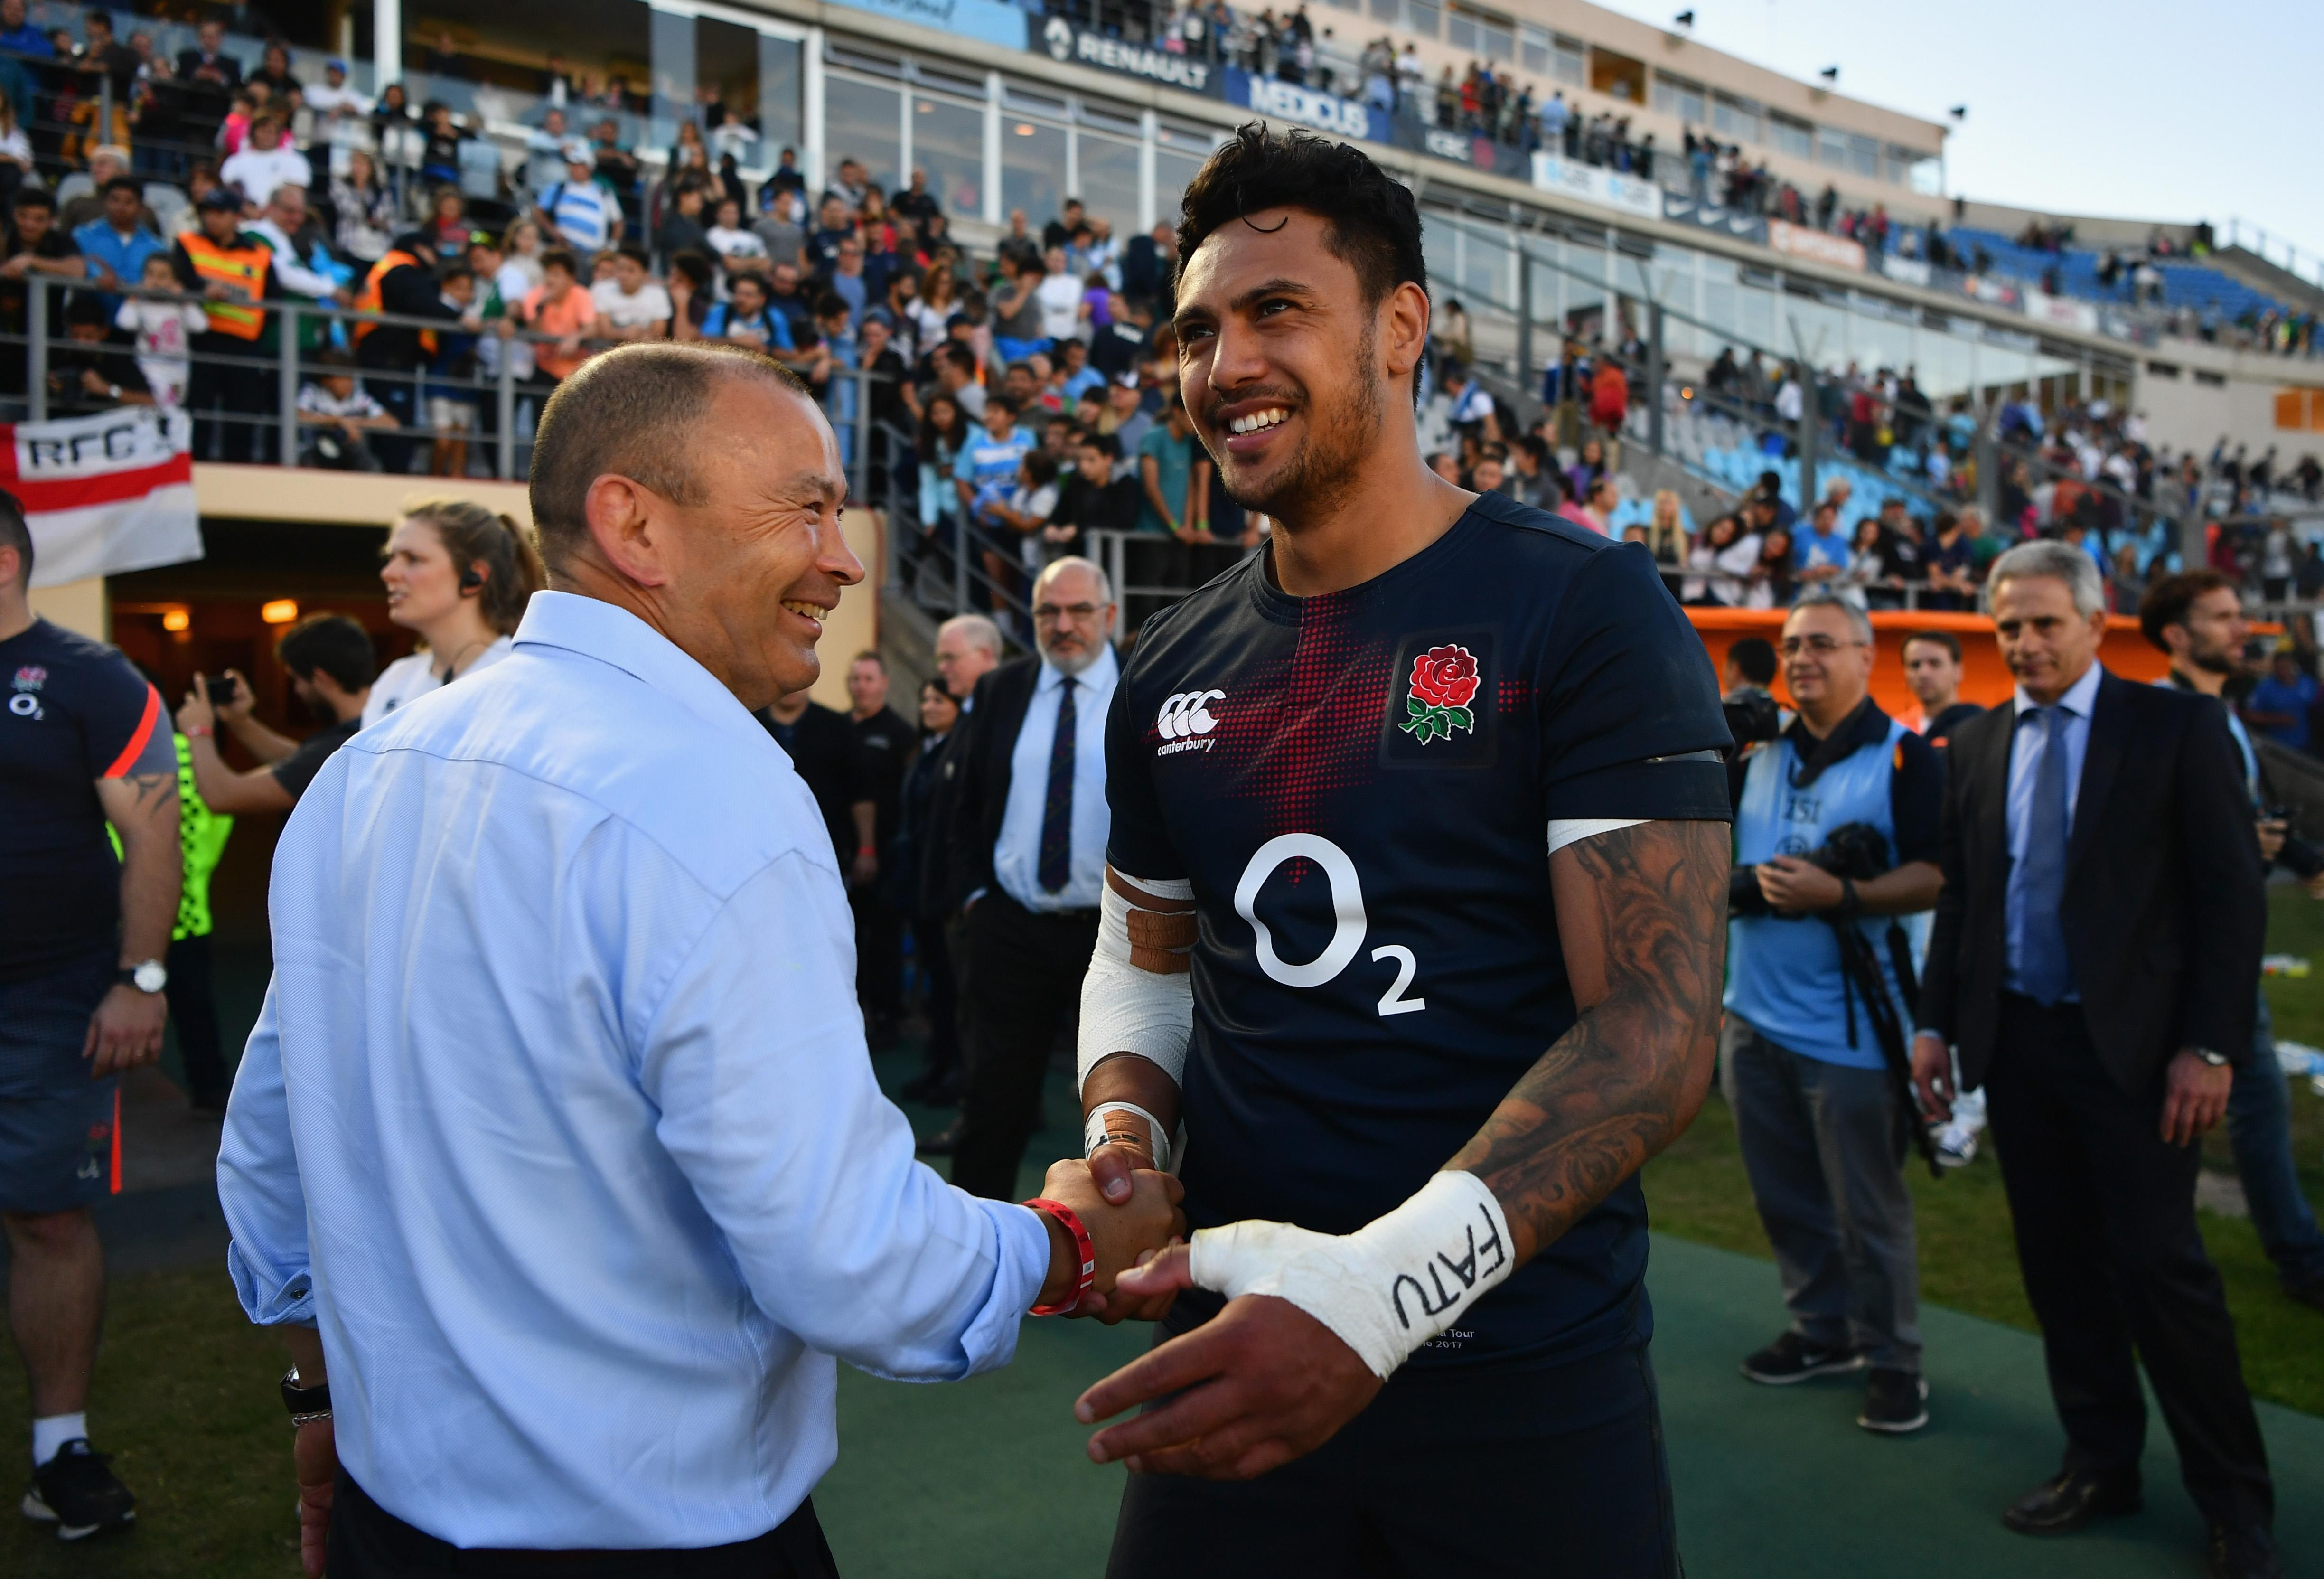 Eddie Jones is likely to take a dim view of the incident, with Denny Solomona already on thin ice